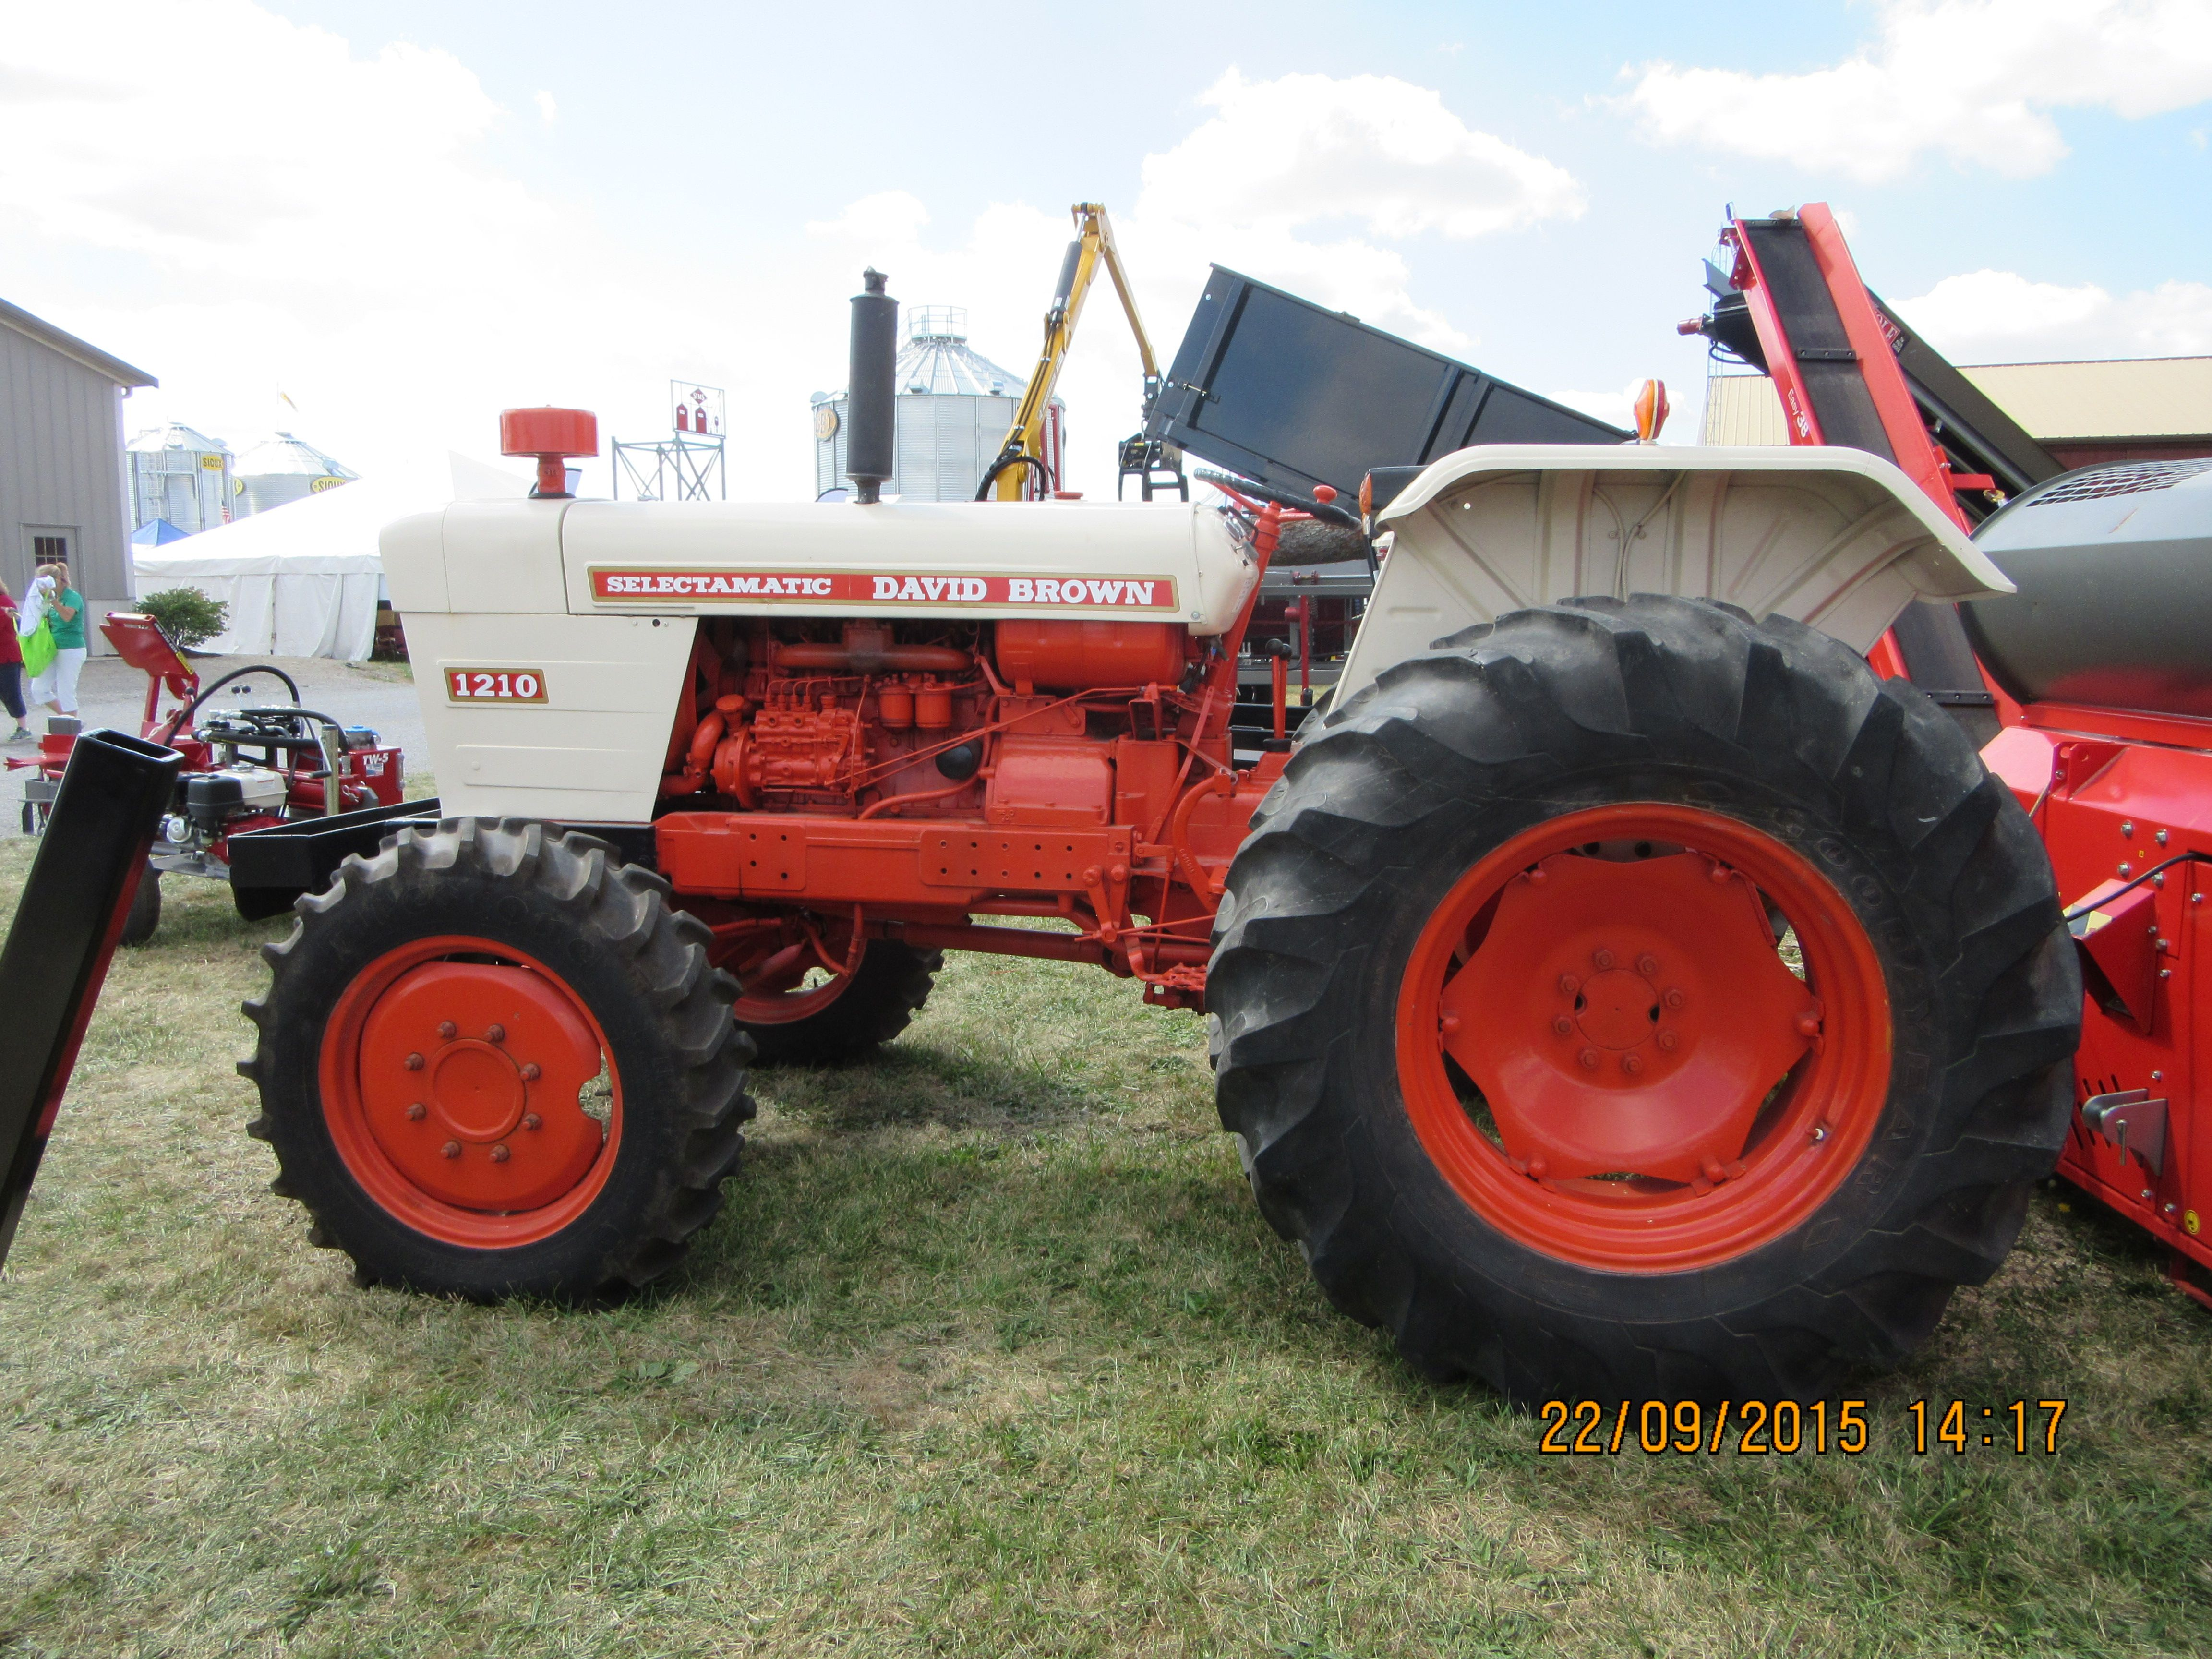 Case 990 Farm Tractors Parts : David brown selectamatic j i case equipment